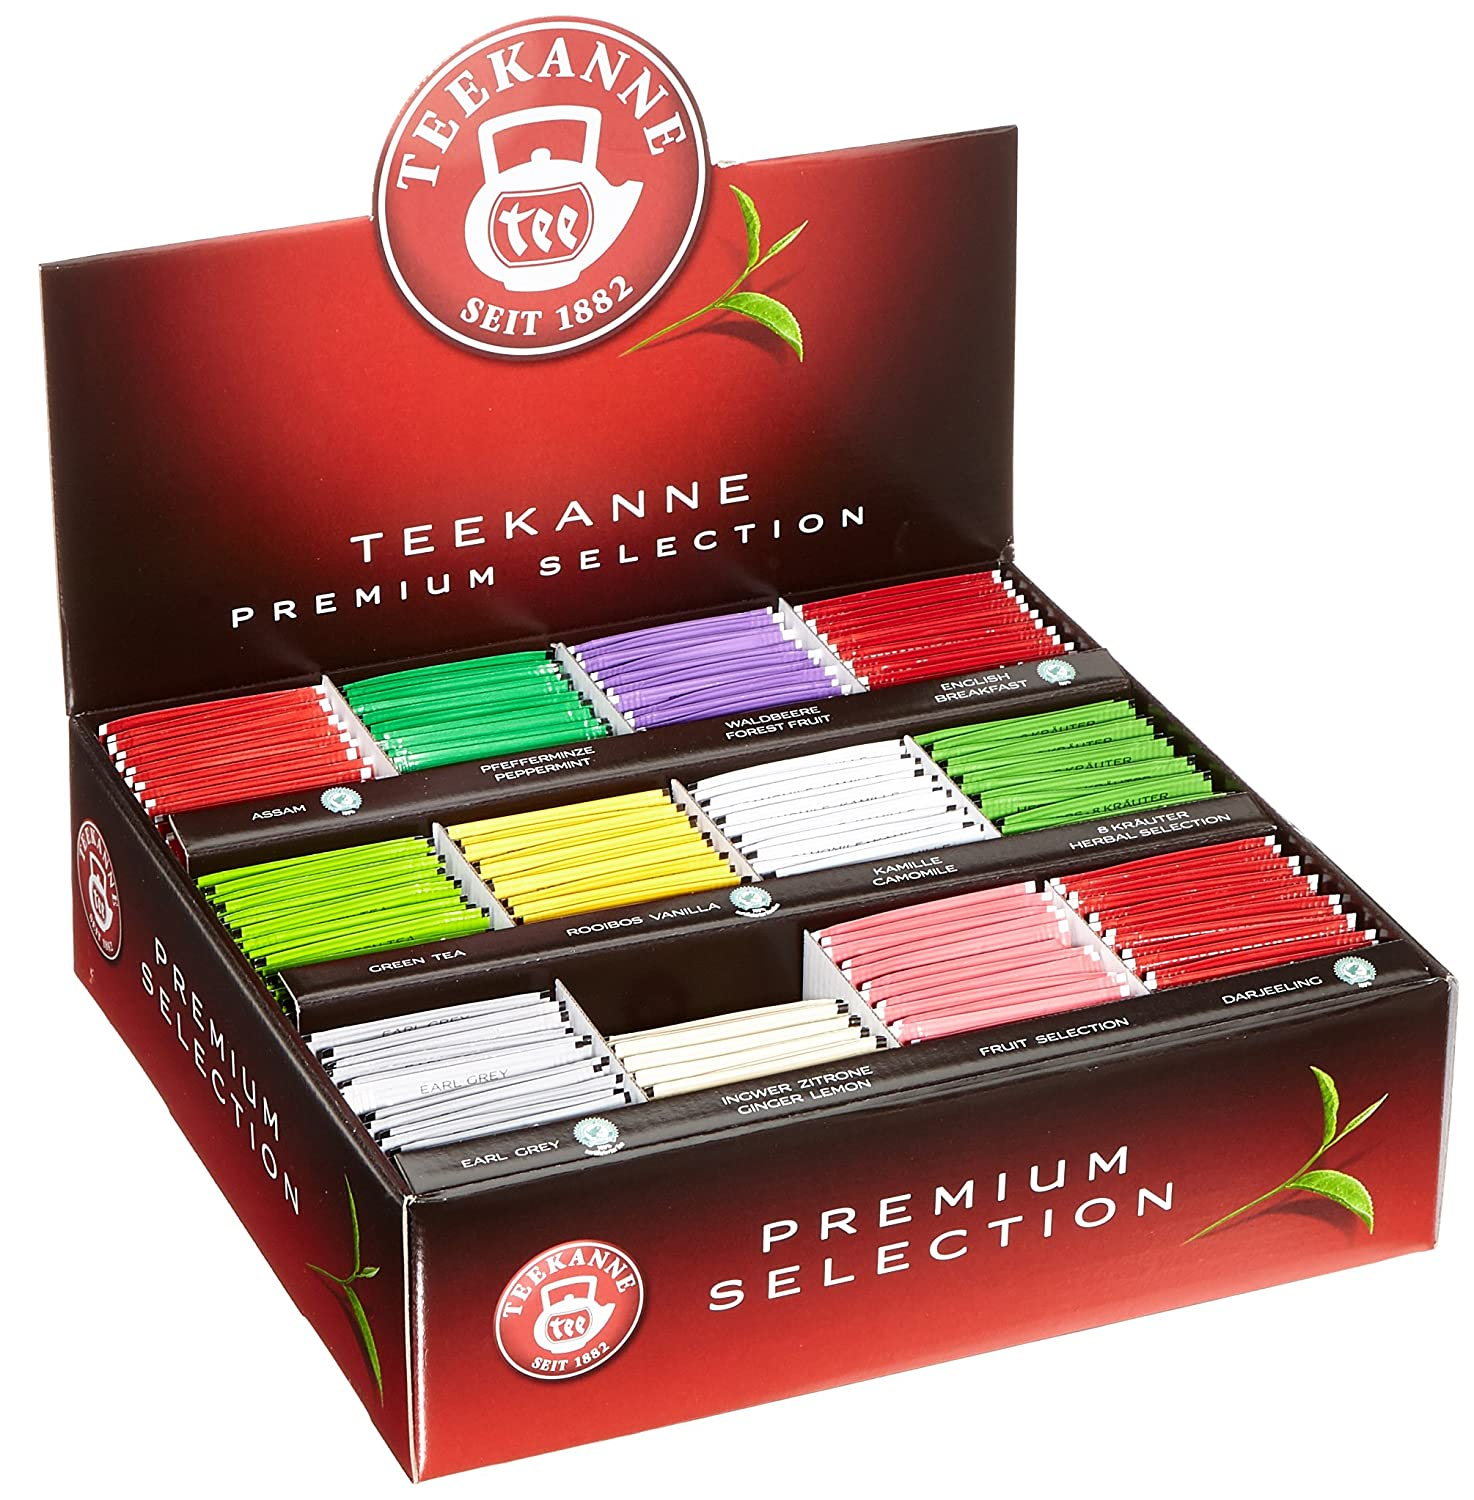 Teekanne Premium Selection Box, 363.75 g, 12 Sorten